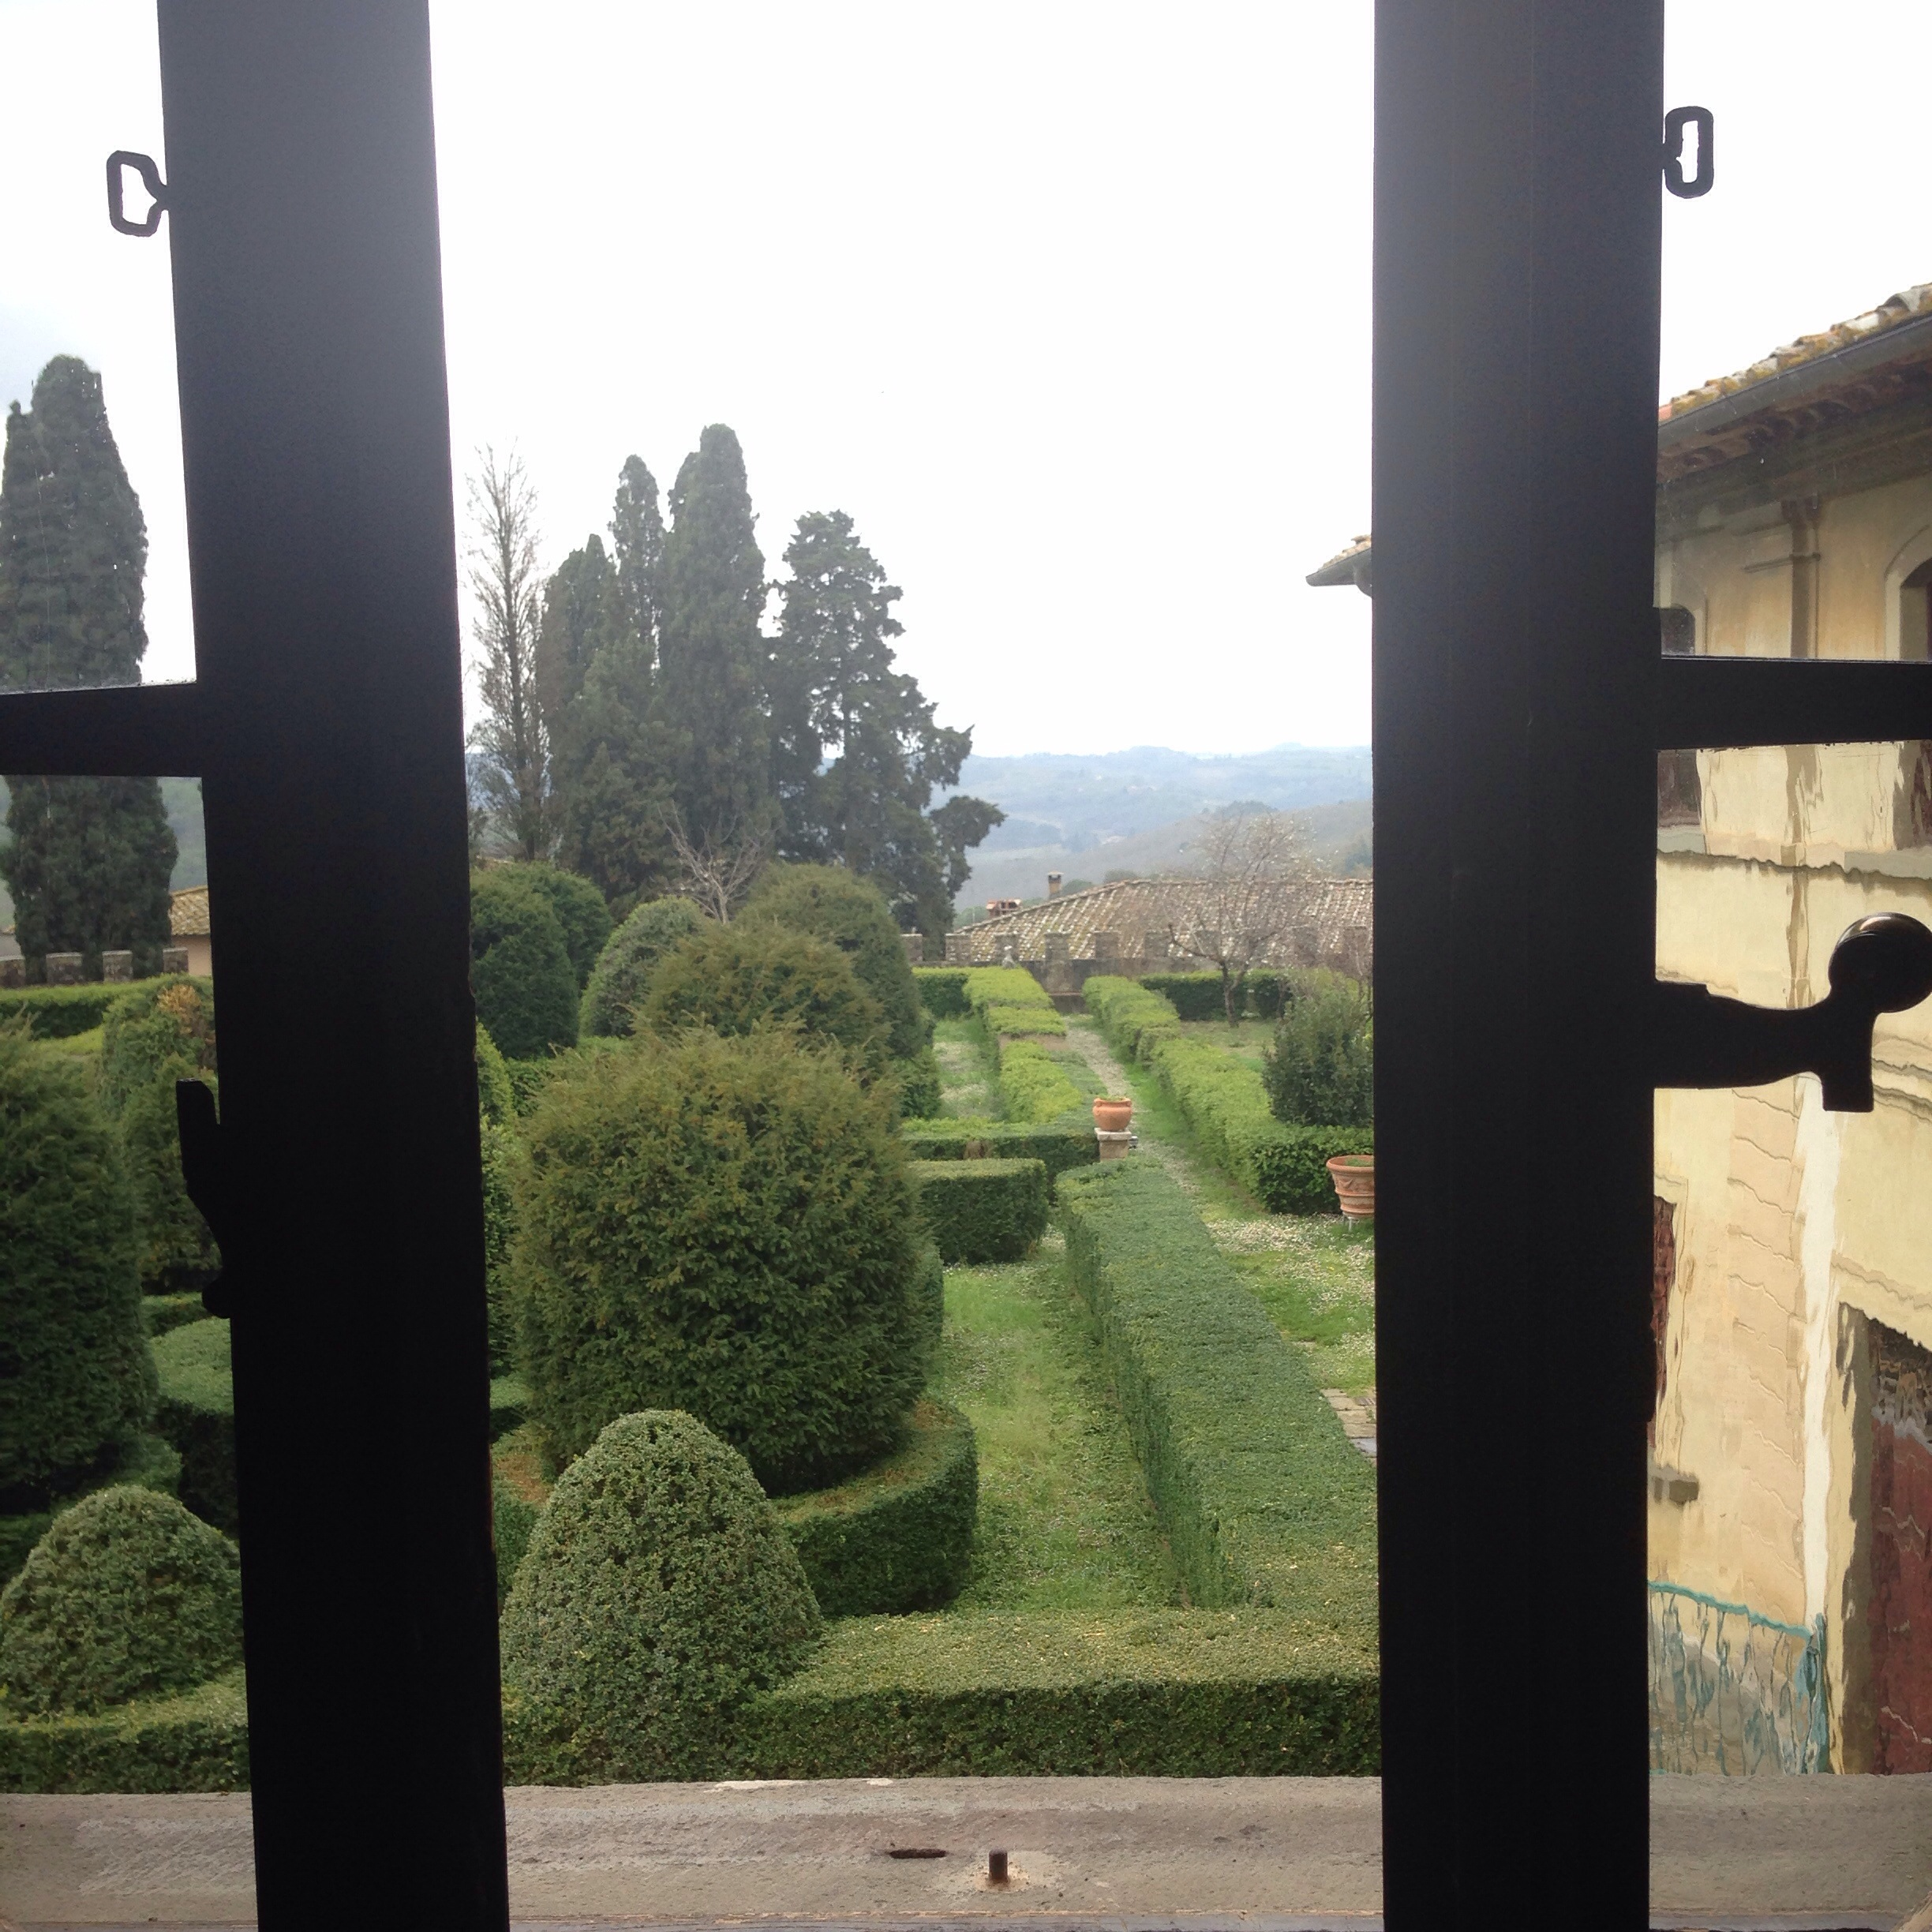 Look out the window and there's that Chianti countryside!